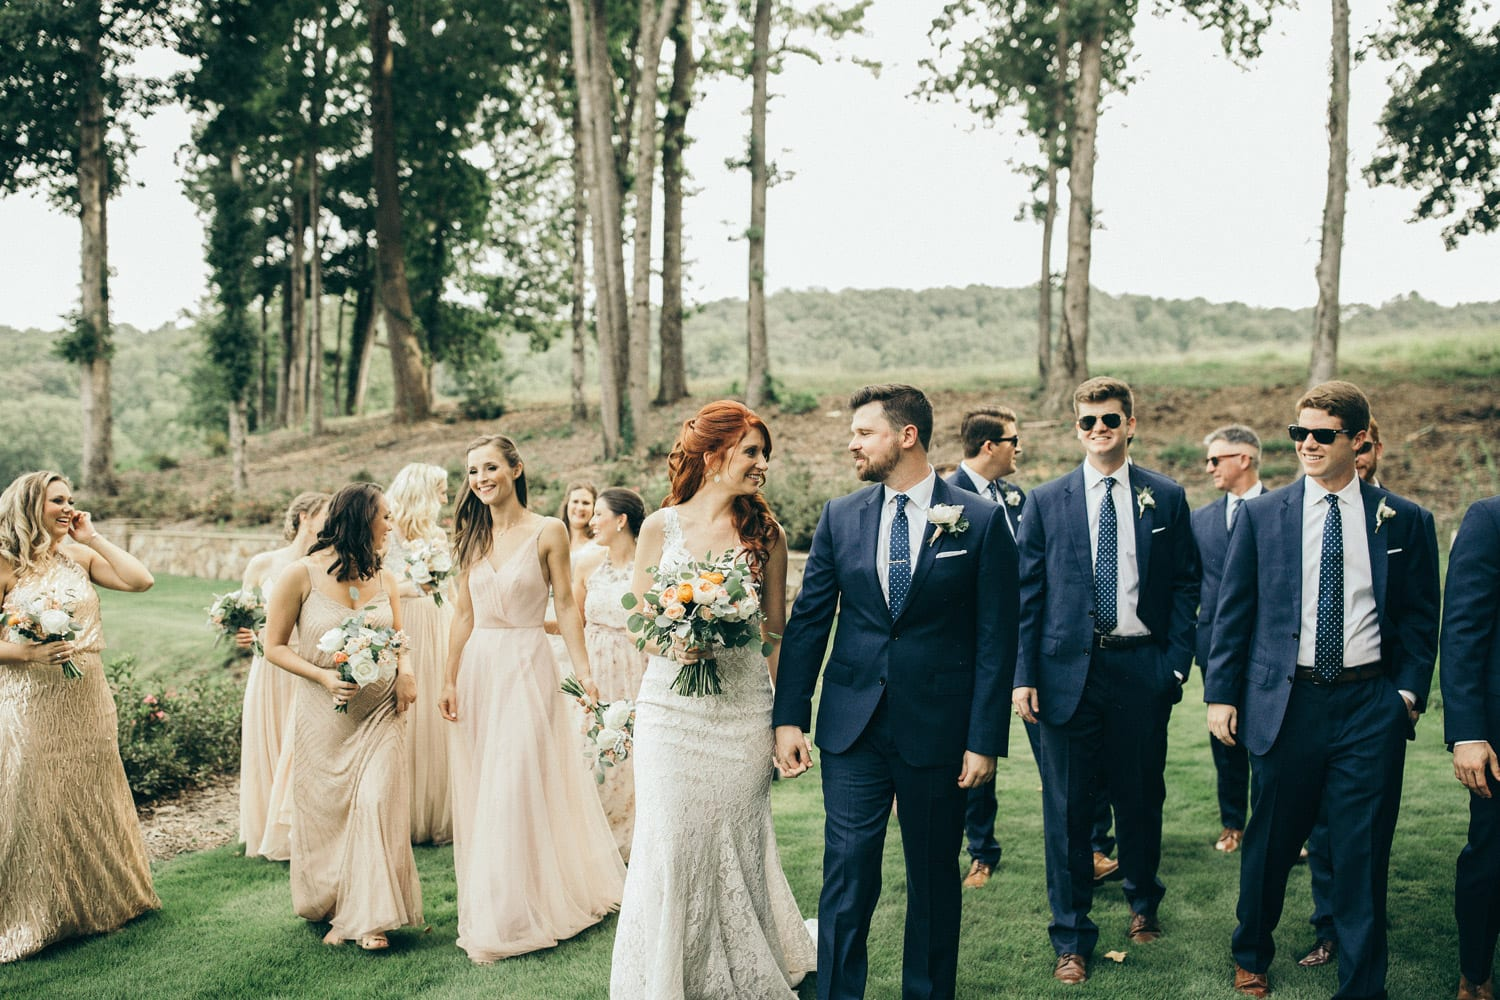 Bridal party walks outside in the grass